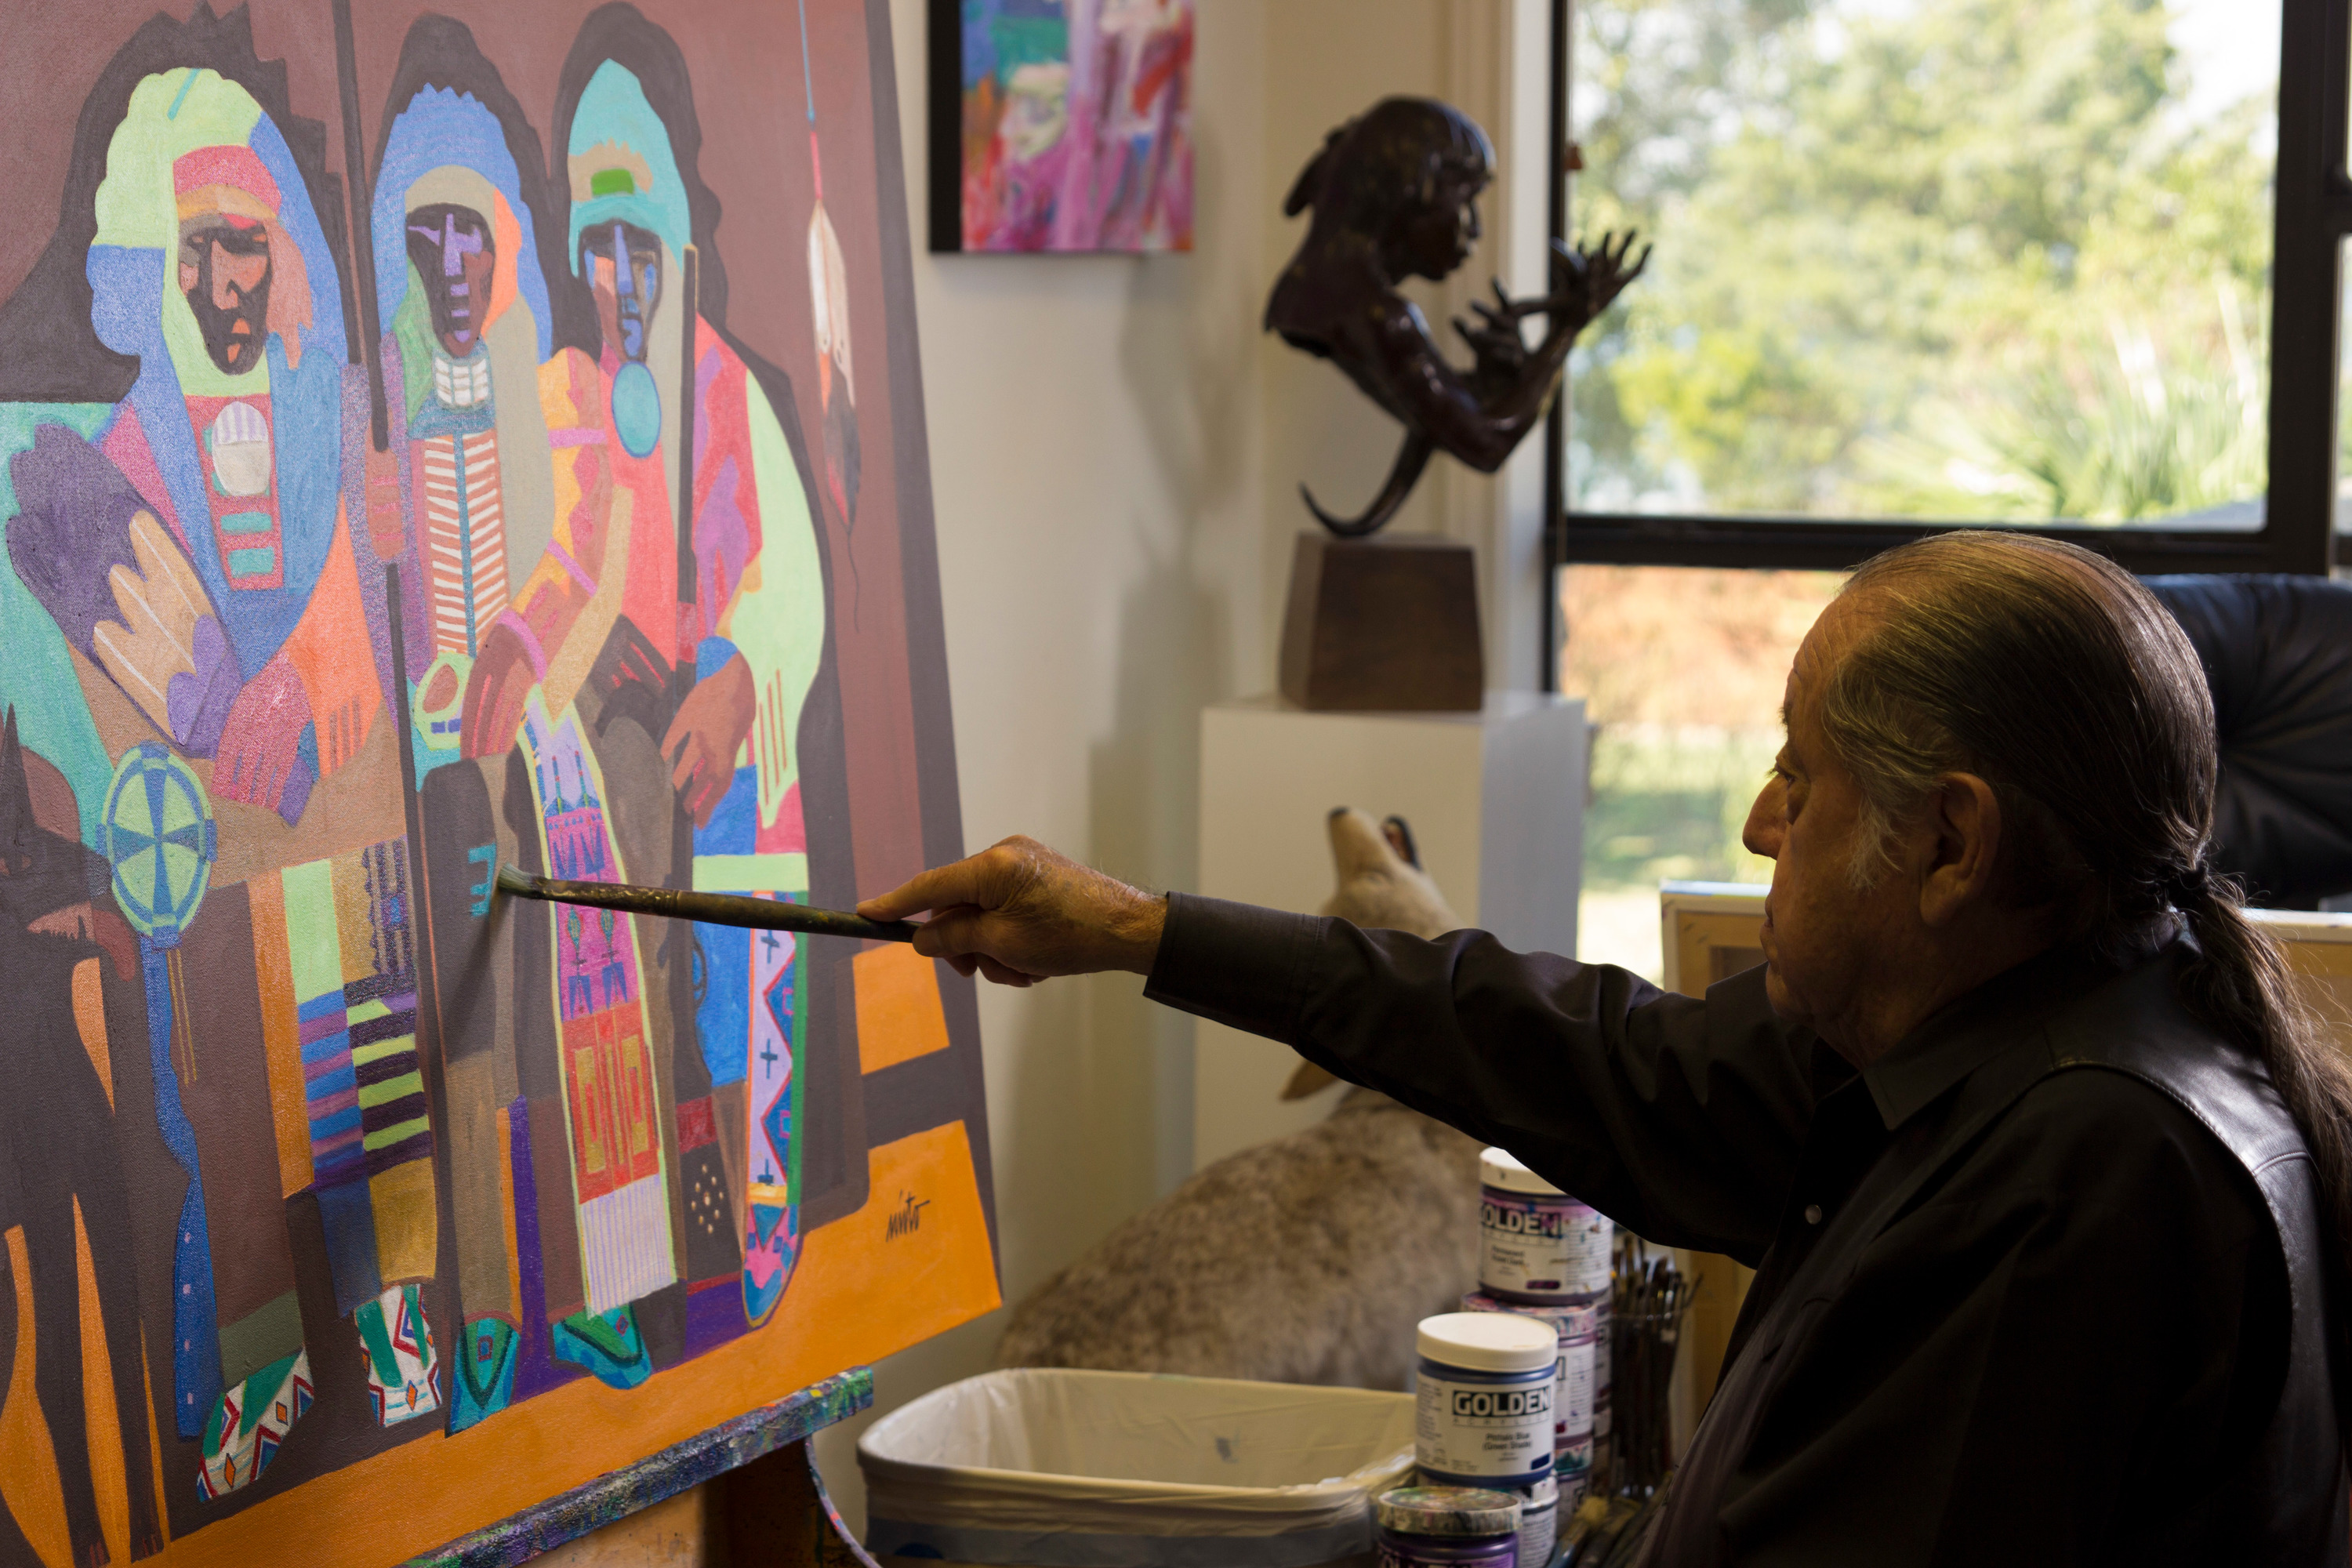 <div class='title'>           John  Nieto painting, in the studio, acrylic painting, native american painting         </div>                 <div class='description'>           John Nieto painting in his studio         </div>